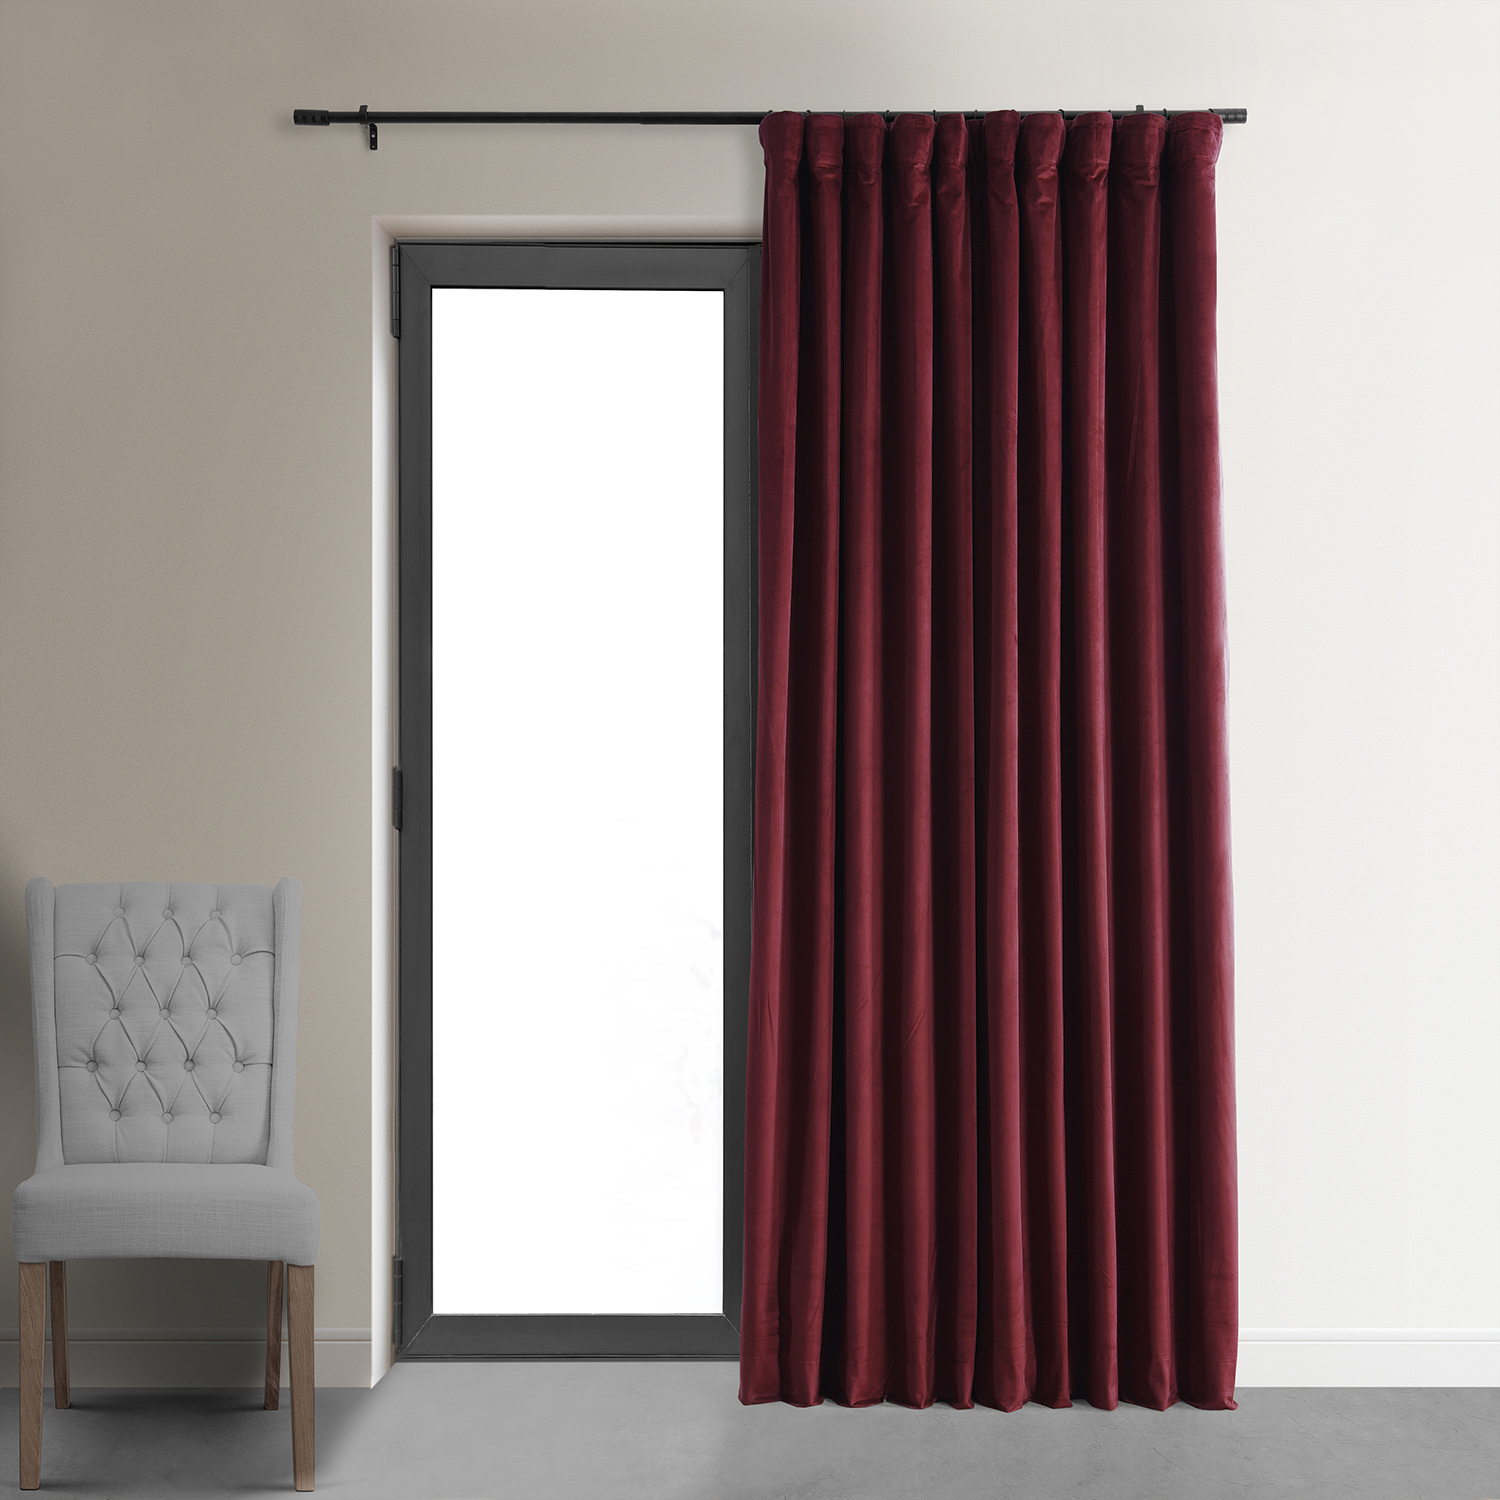 Signature Burgundy Double Wide Velvet Blackout Pole Pocket Curtain